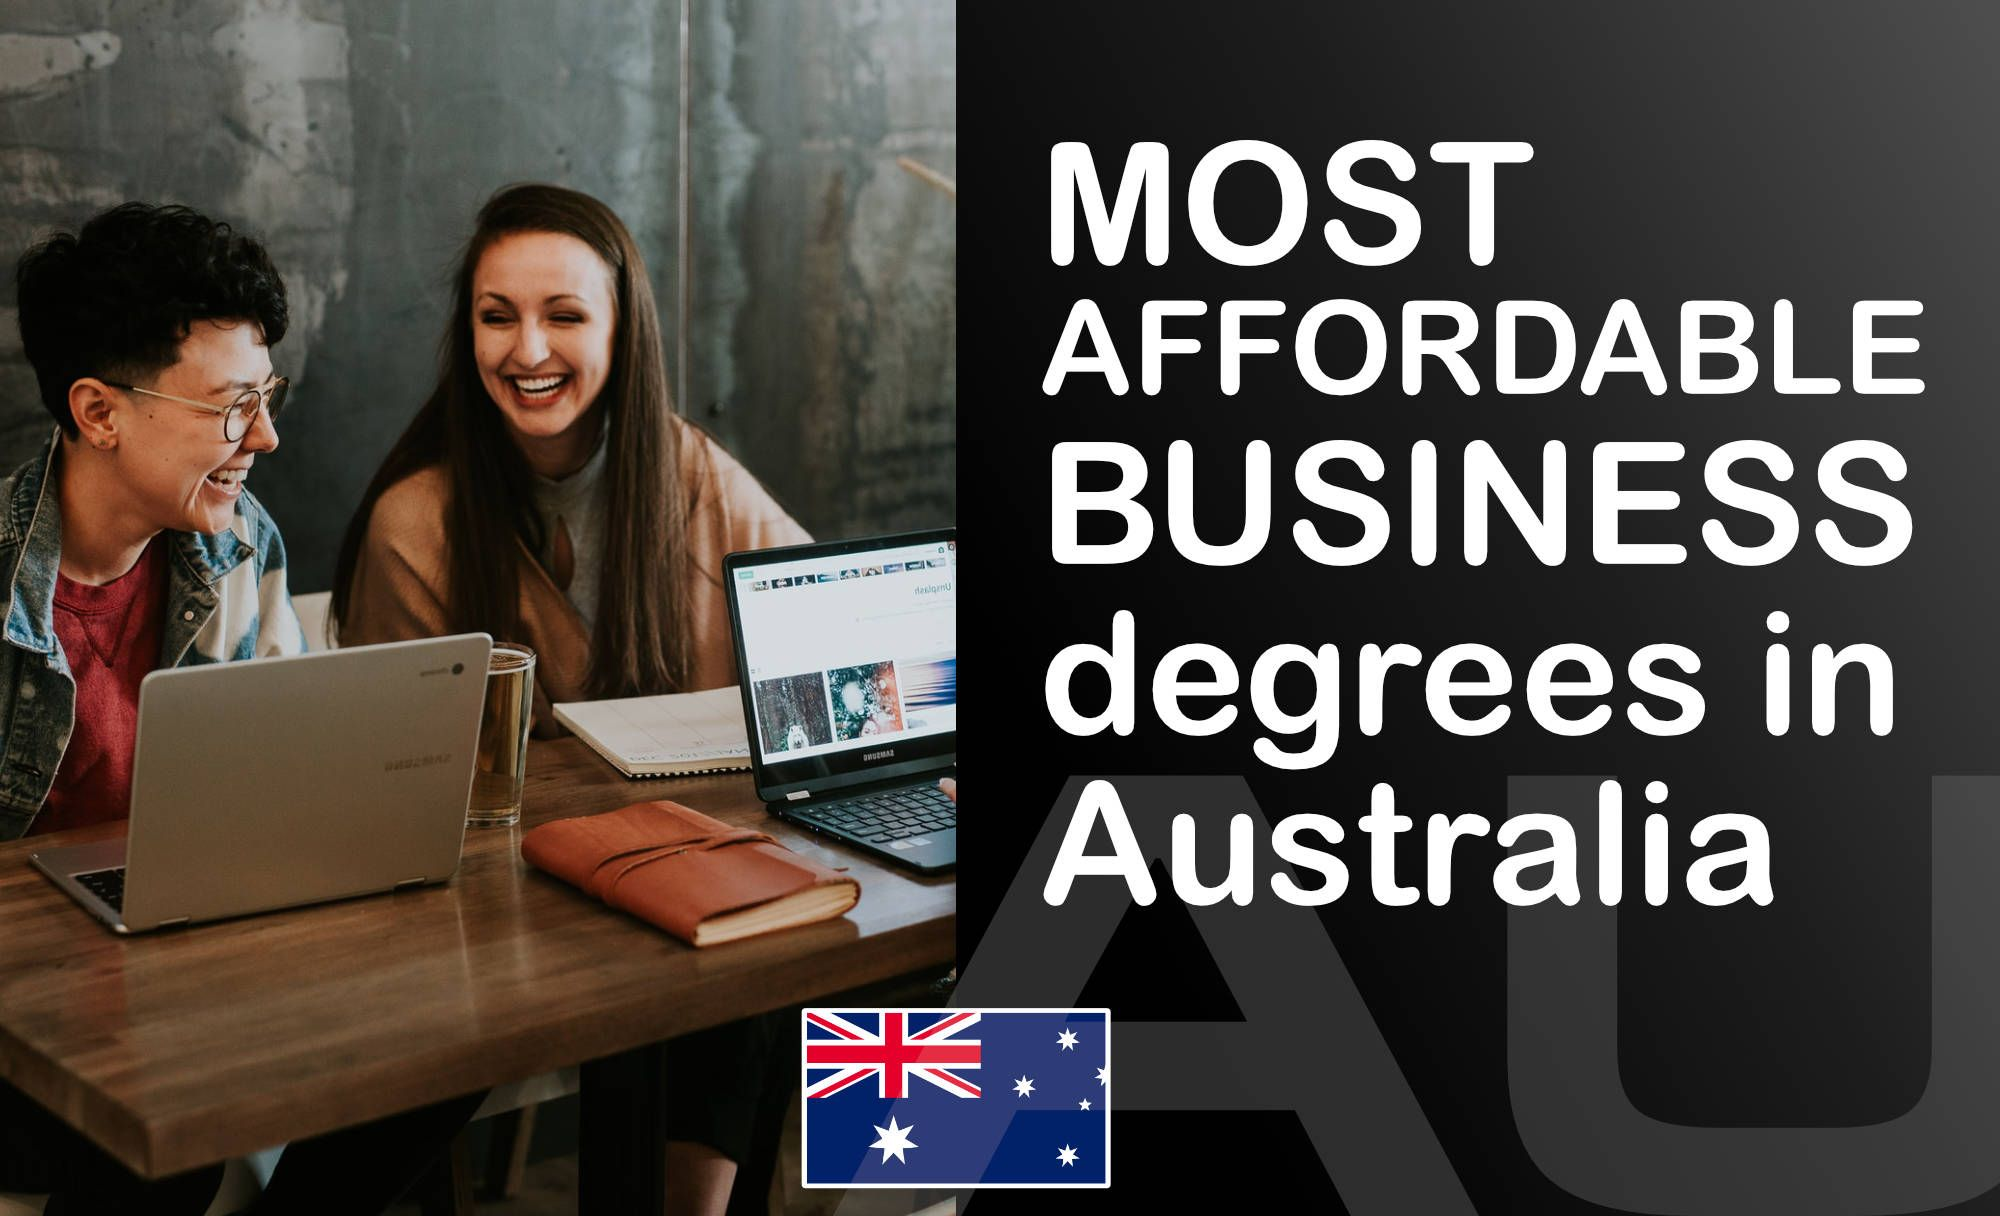 🇦🇺 Top 10 Most Affordable Business degrees in Australia